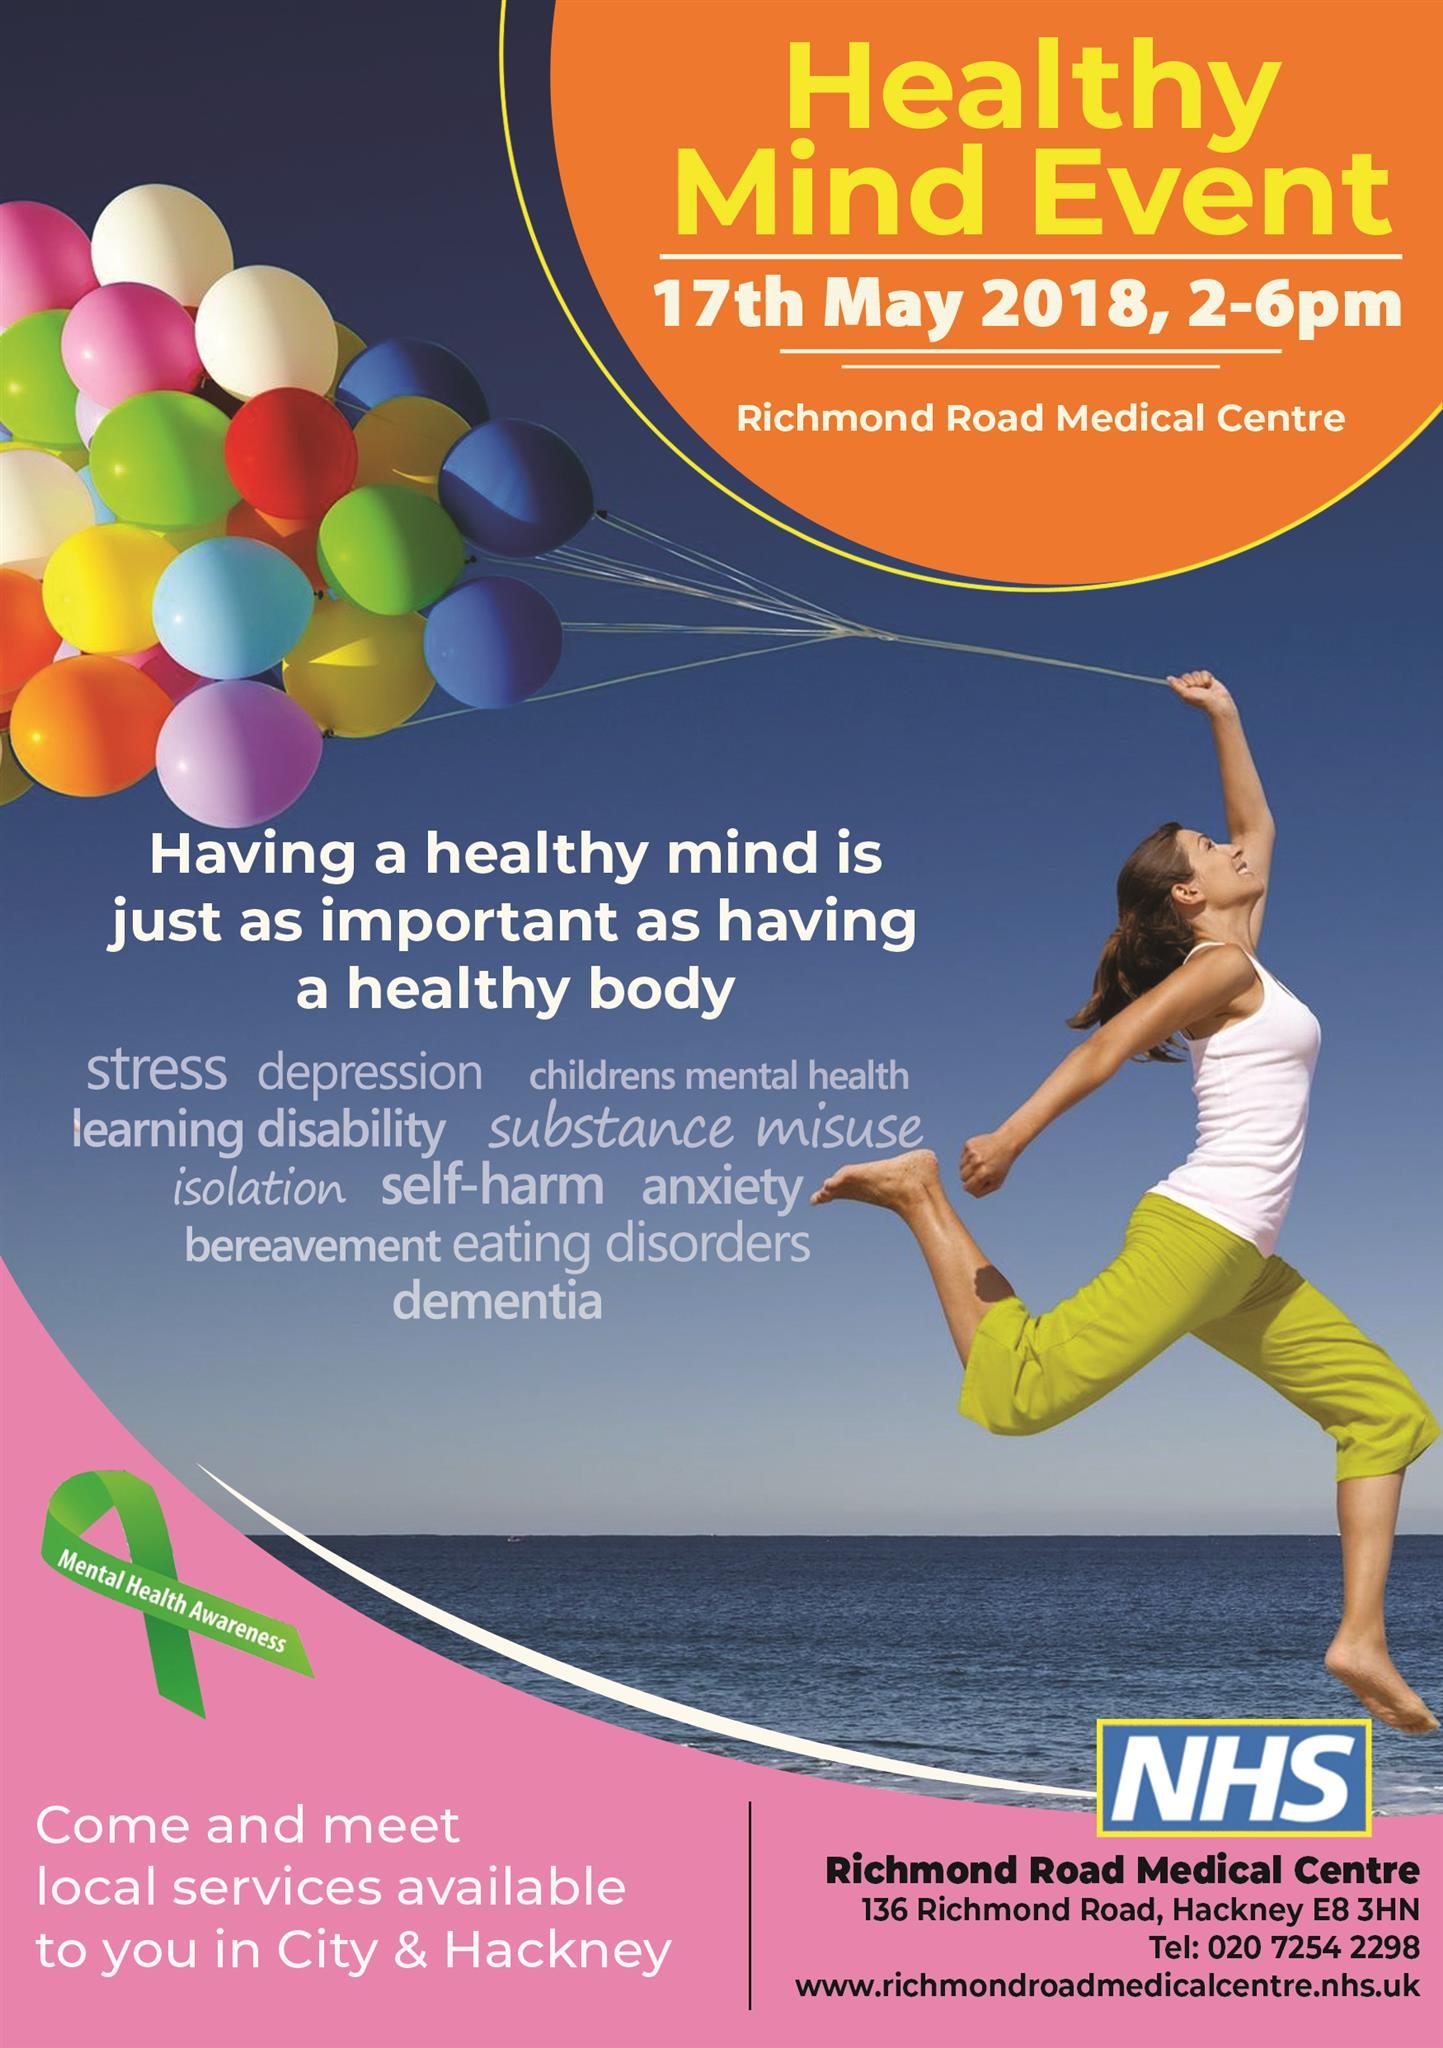 Healthy Mind Event